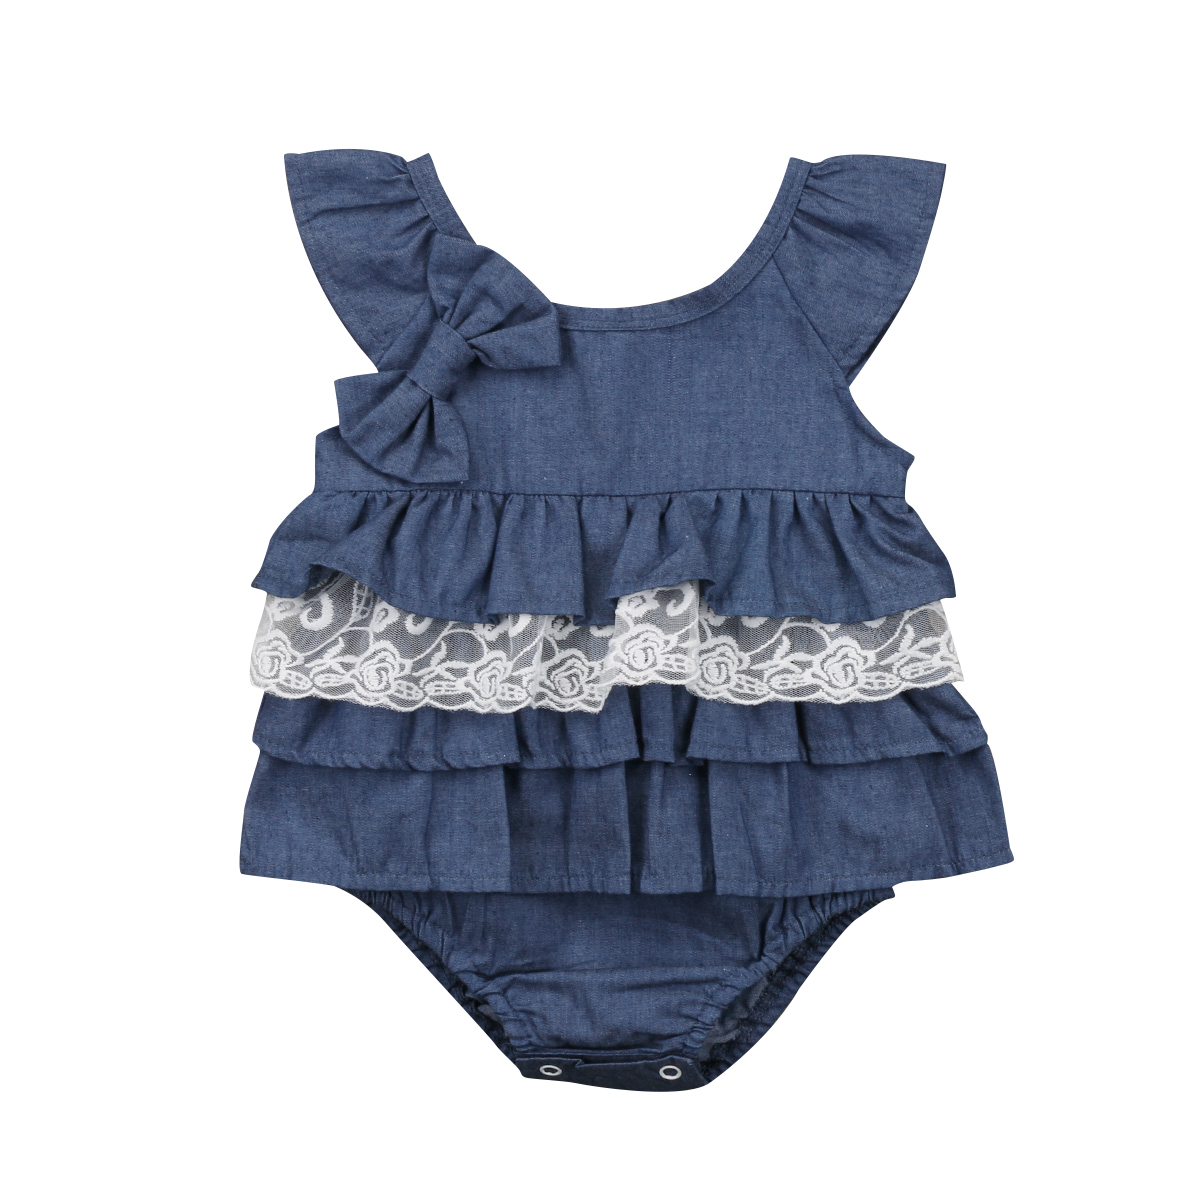 Fashion Lace Denim Newborn Baby Girls   Romper   Jumpsuit Clothes Outfit Baby   Rompers